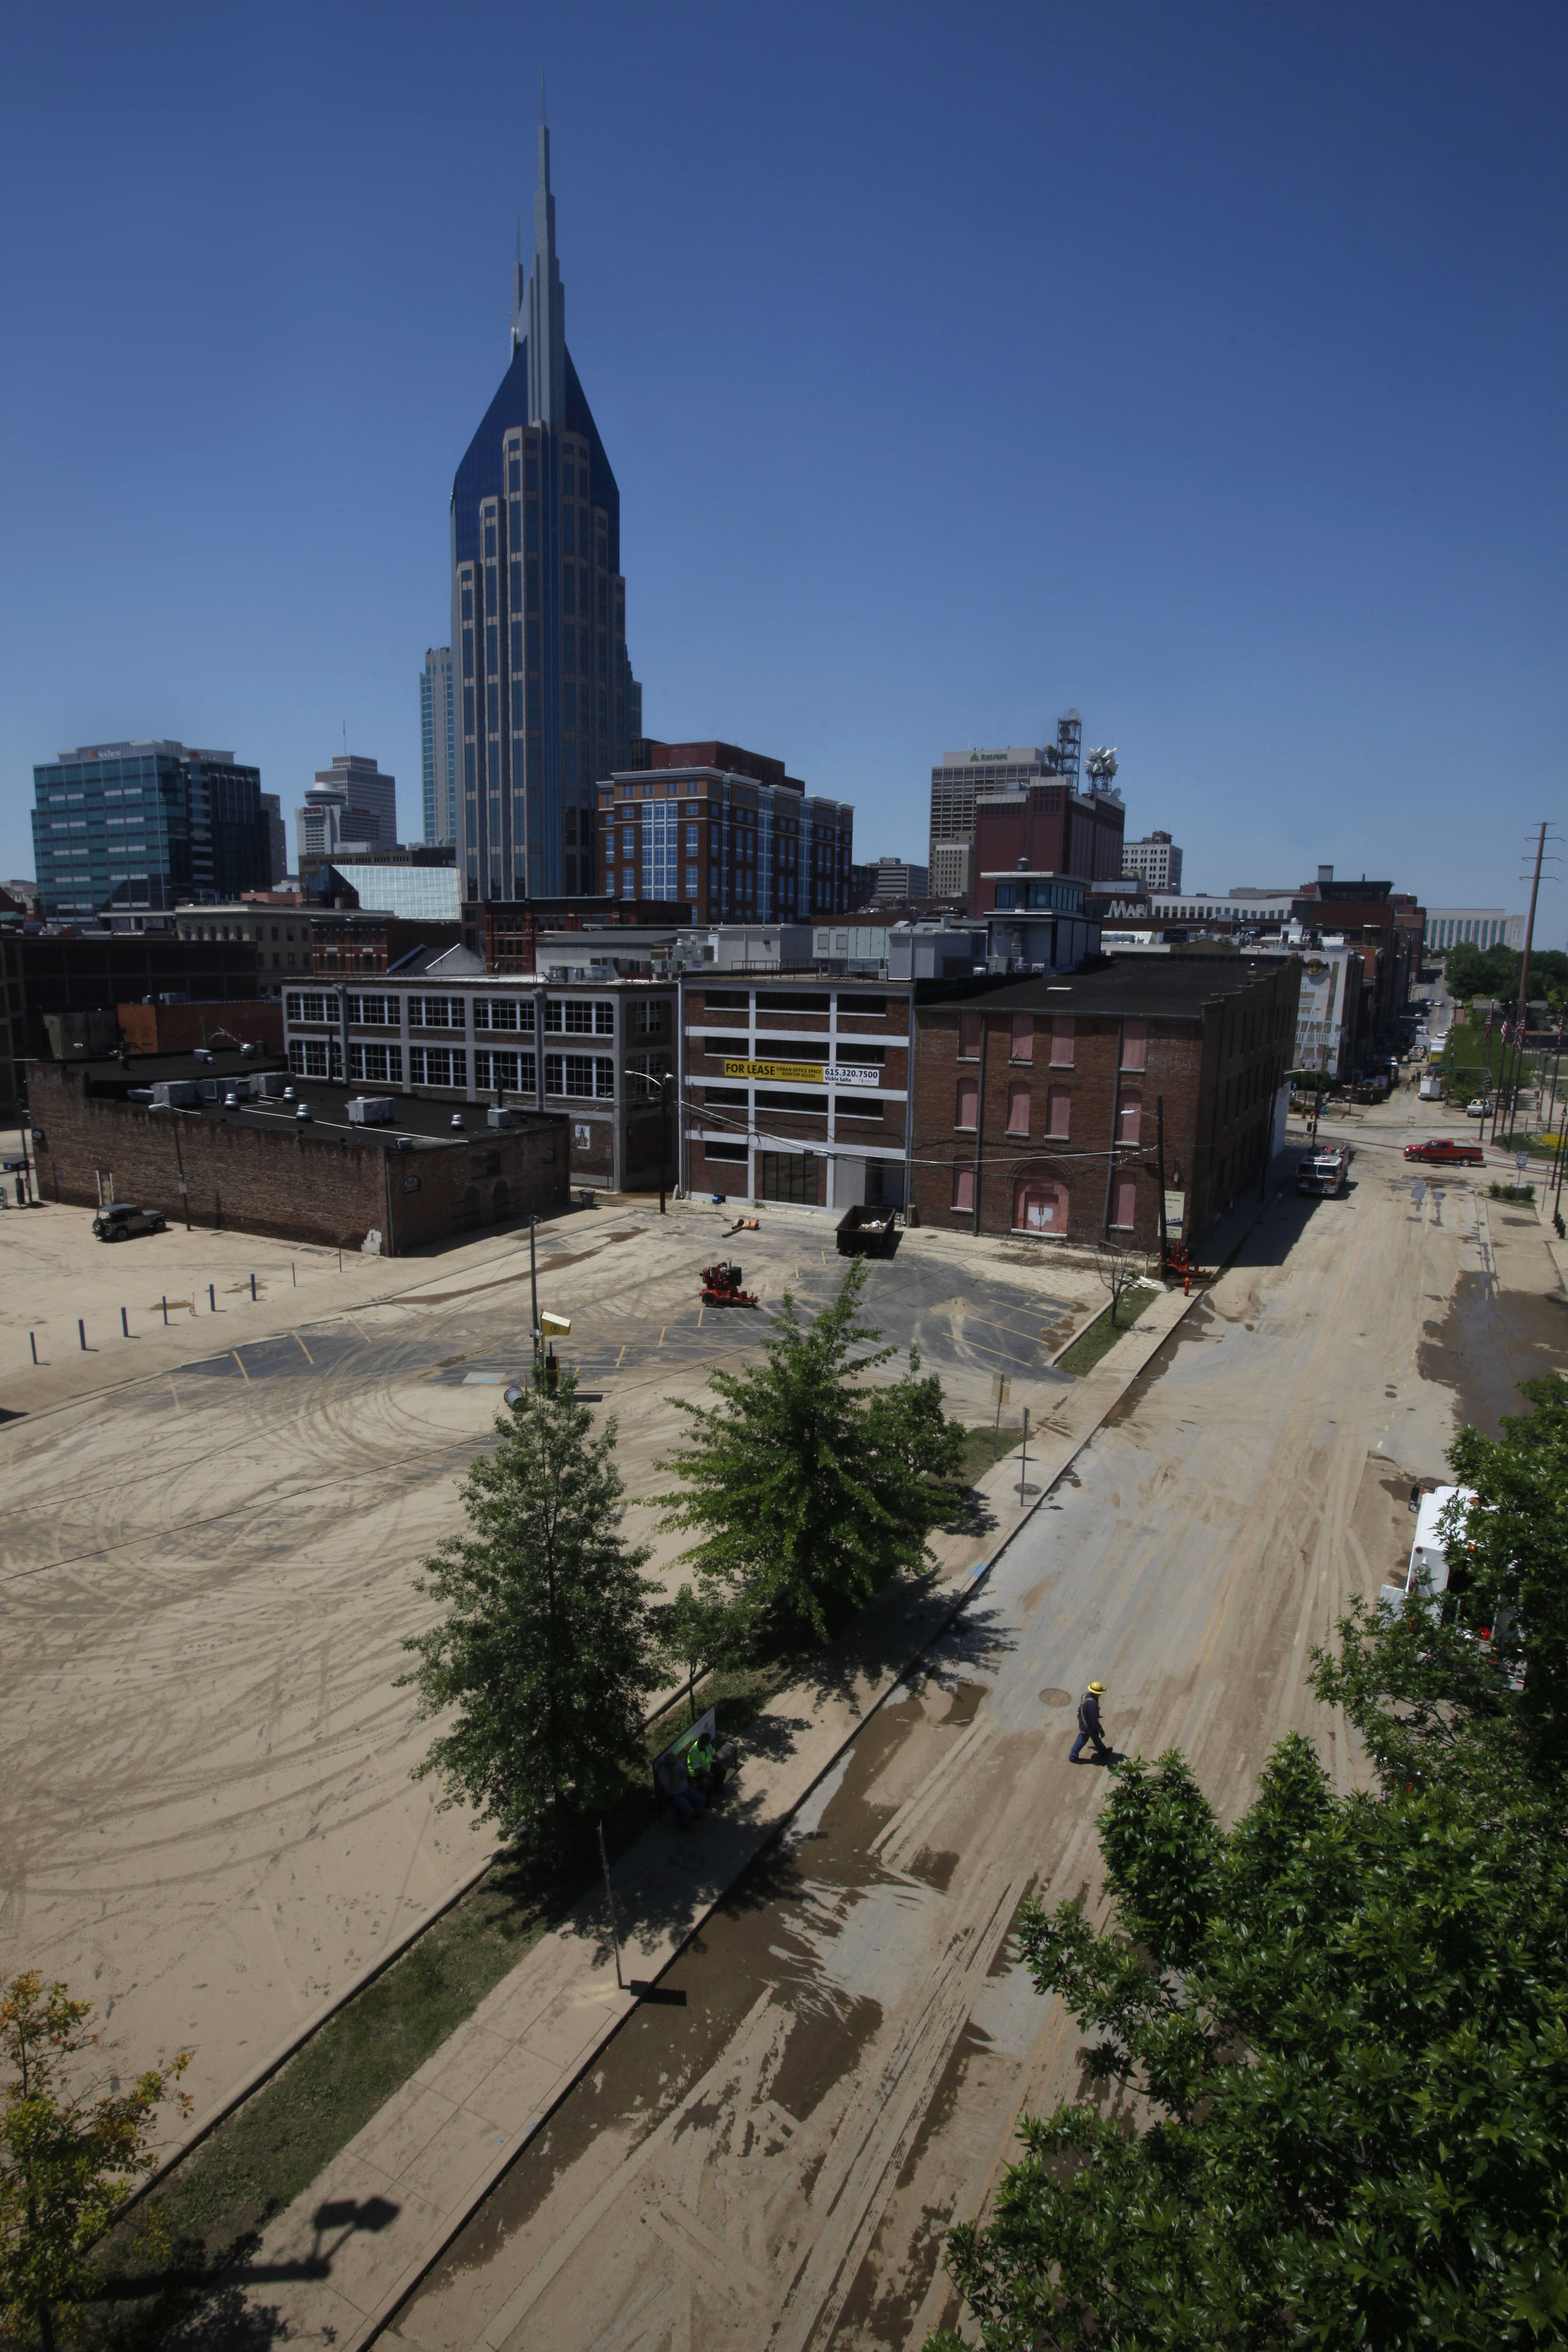 Downtown streets dry out, covered in mud, Thursday, May 6, 2010 in Nashville, Tenn.